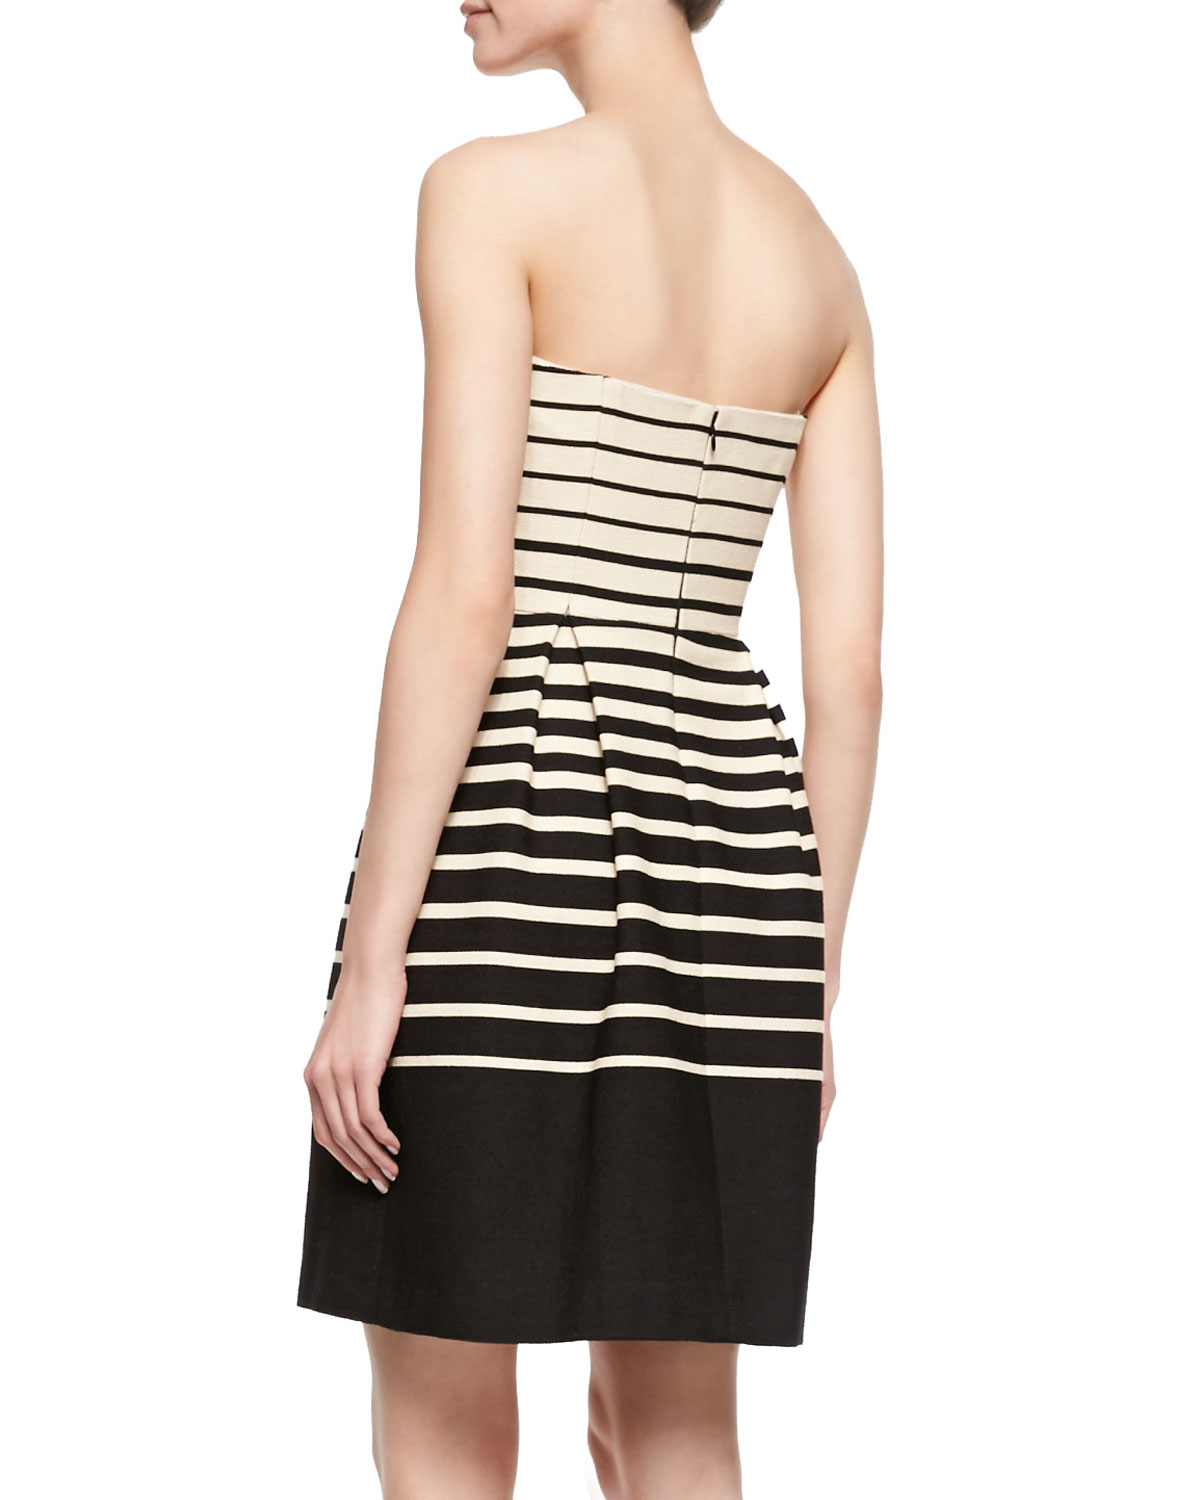 Strapless Striped Dress